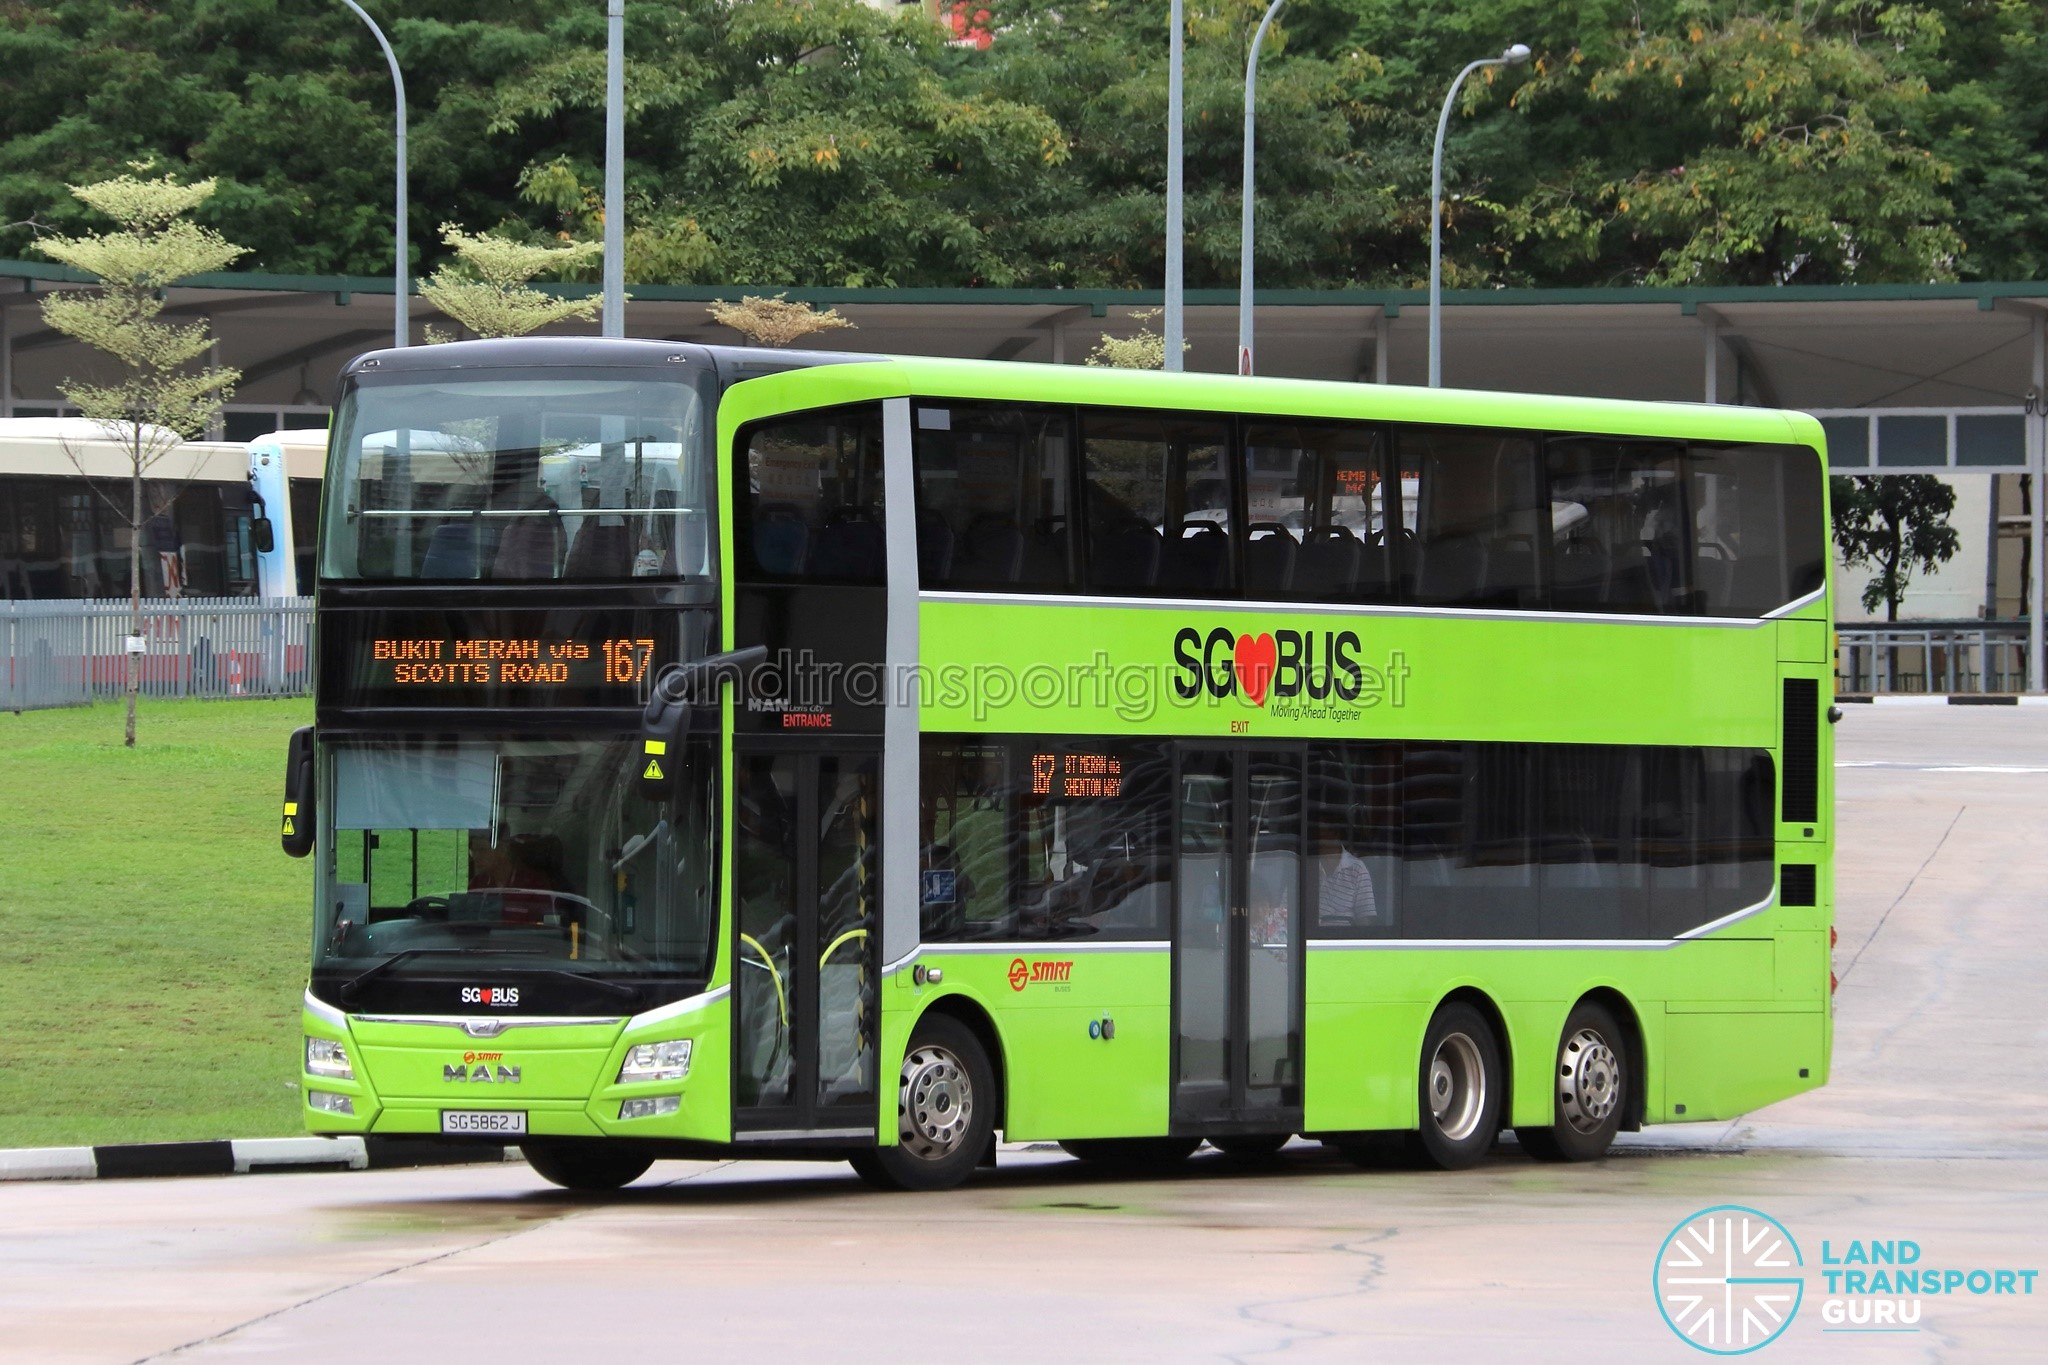 SMRT Bus Service 167 | Land Transport Guru